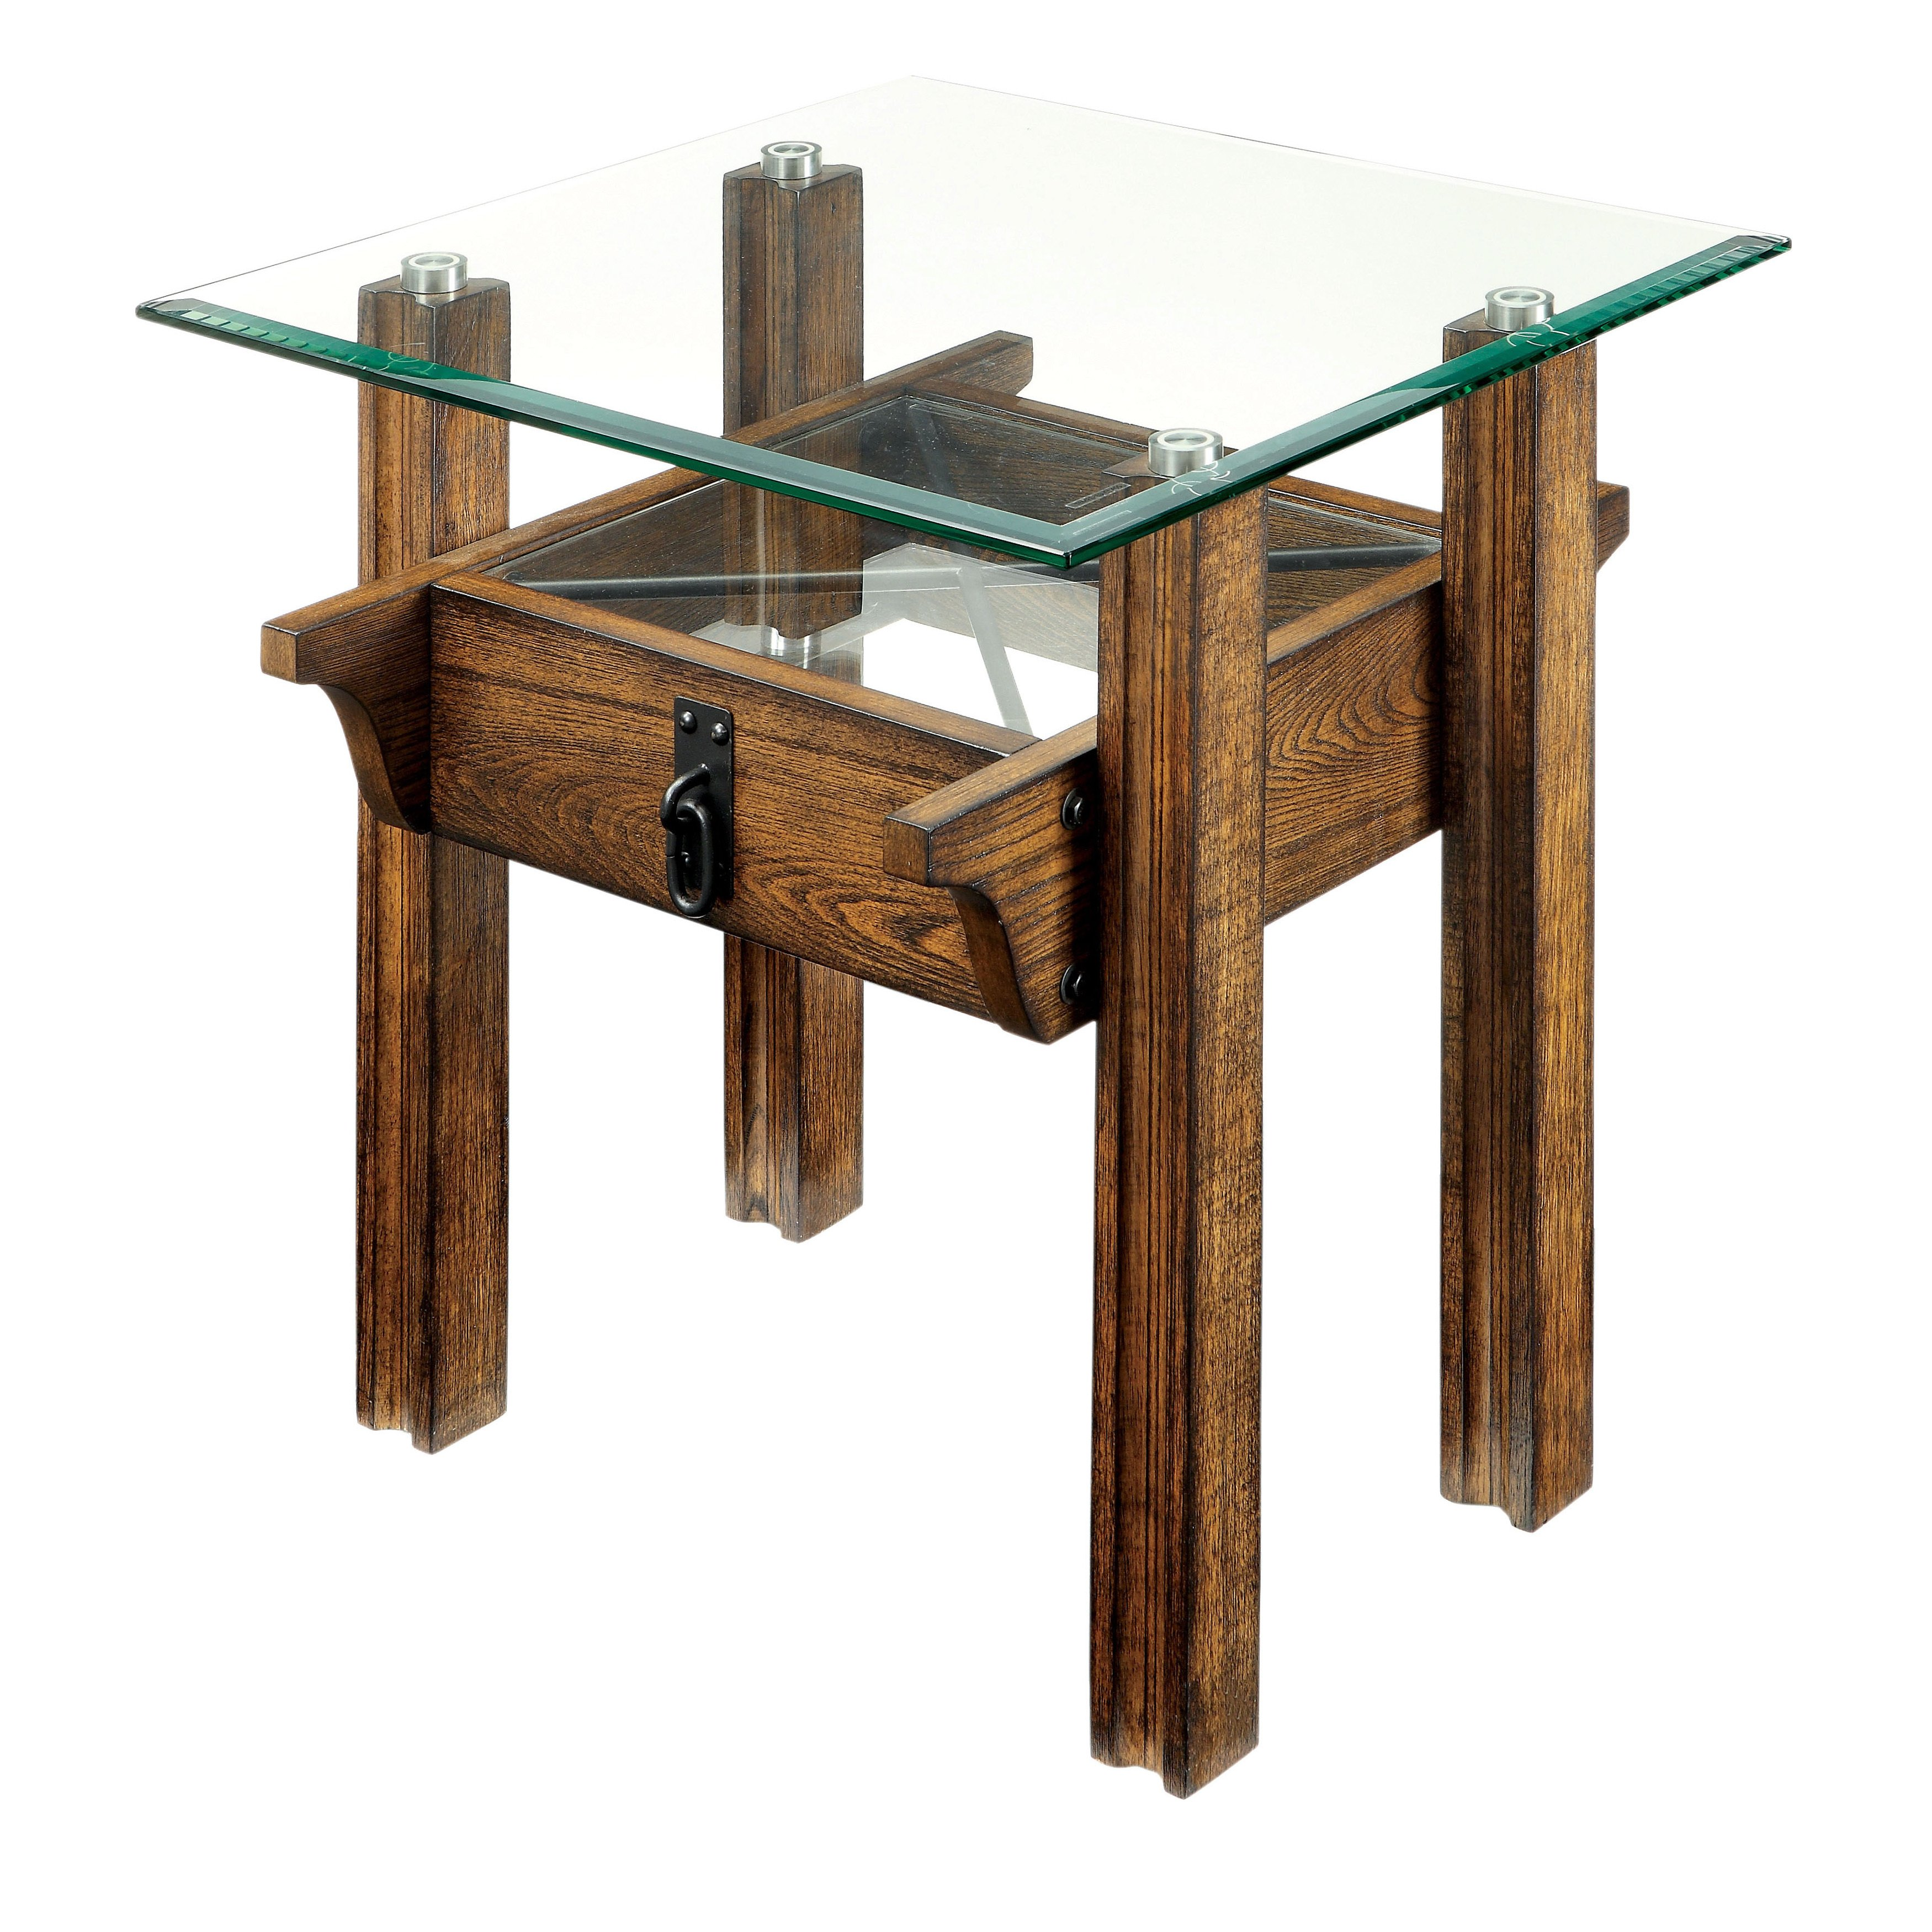 furniture america charlotte rustic piece glass top accent table set wood free shipping today astoria patio magnussen bedroom peva tablecloth counter height dining with bench